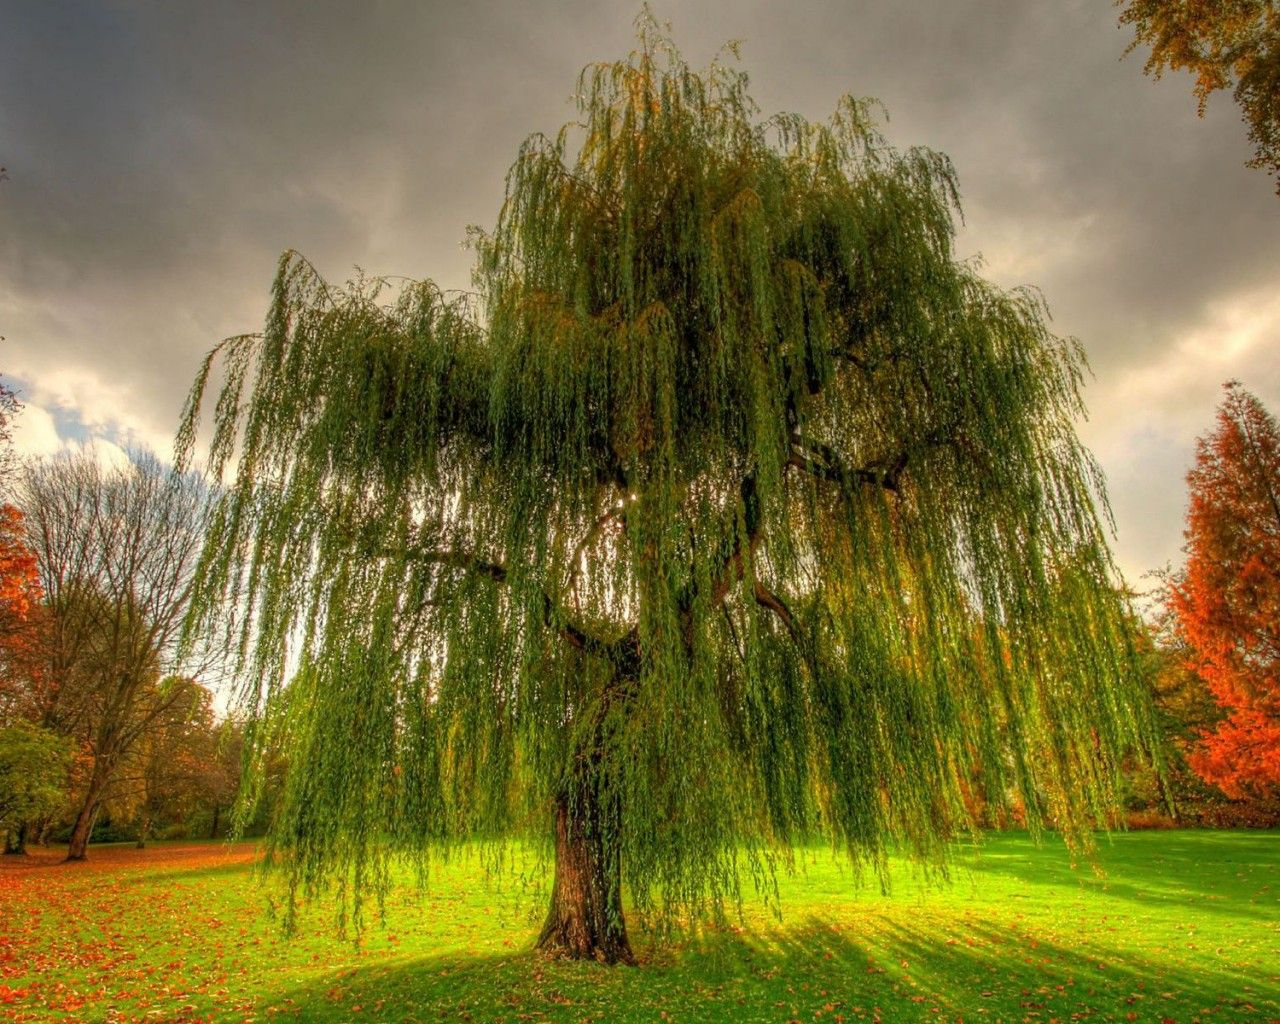 A beautiful weeping willow tree-- http://forums.psychcentral.com/coffeehouse/357540-trees-plants.html